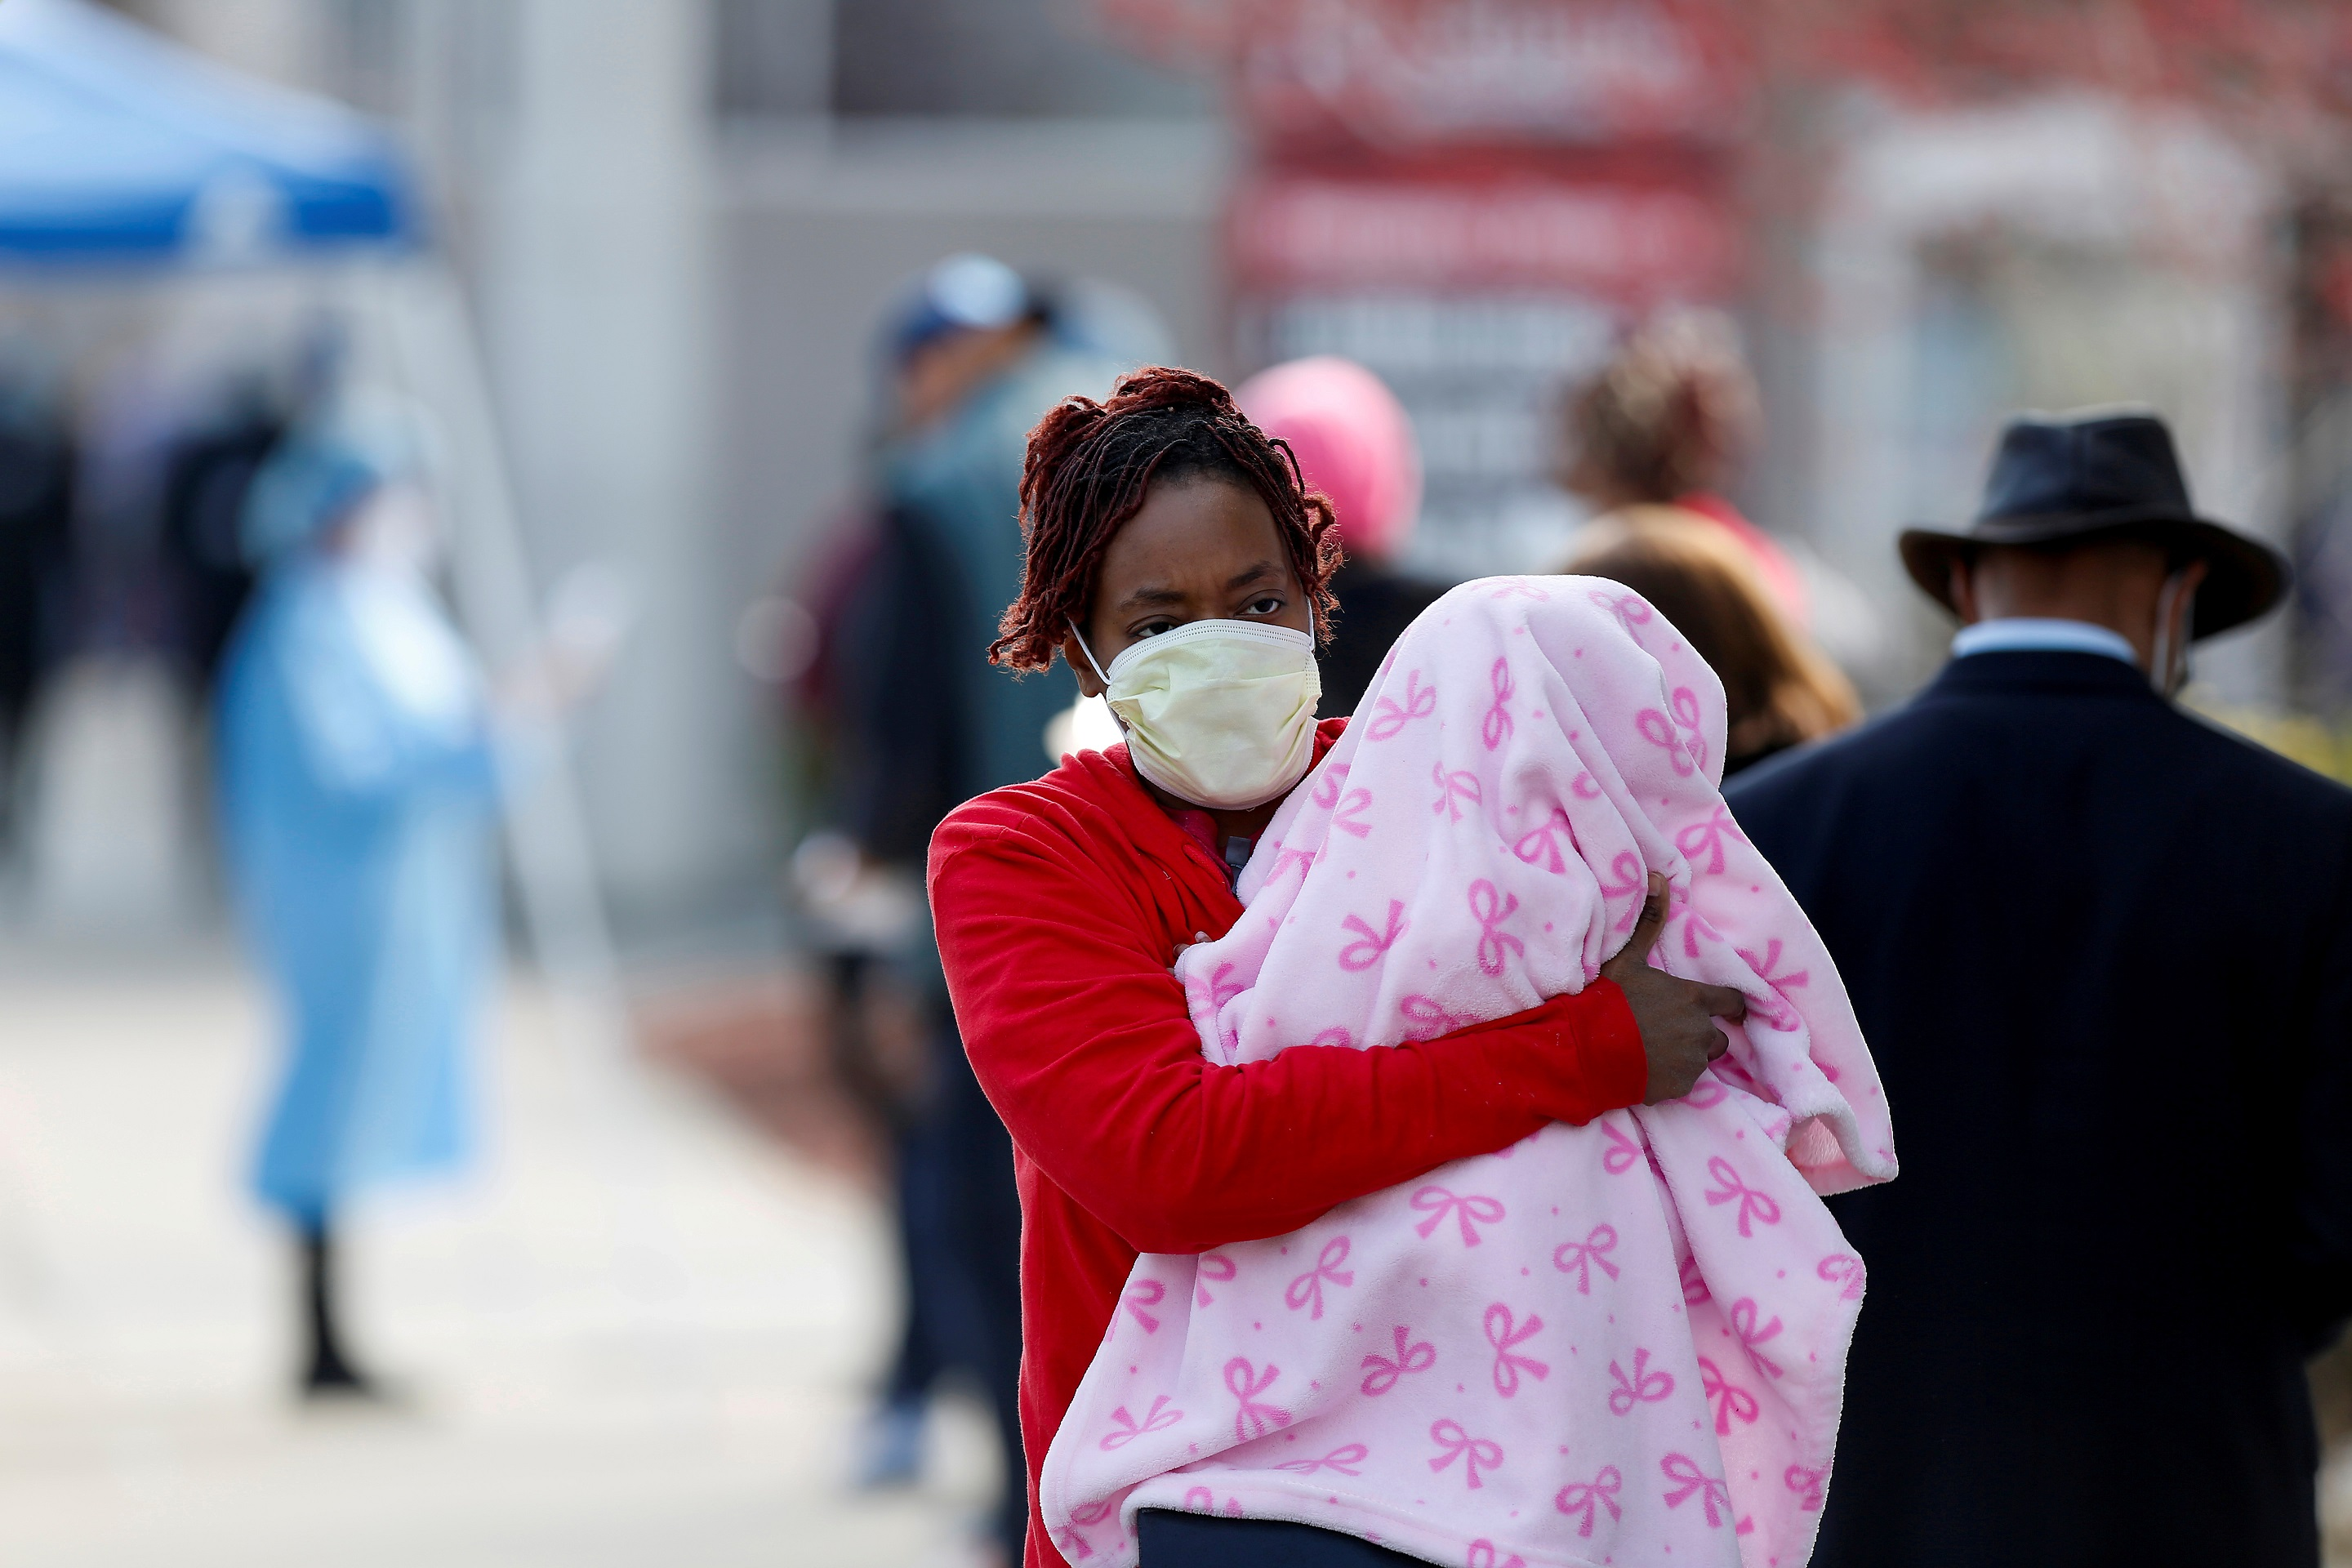 Covid-19: Africa with another 1039 dead and 20,177 infected in the last 24  hours - Ver Angola - Daily, the best of Angola